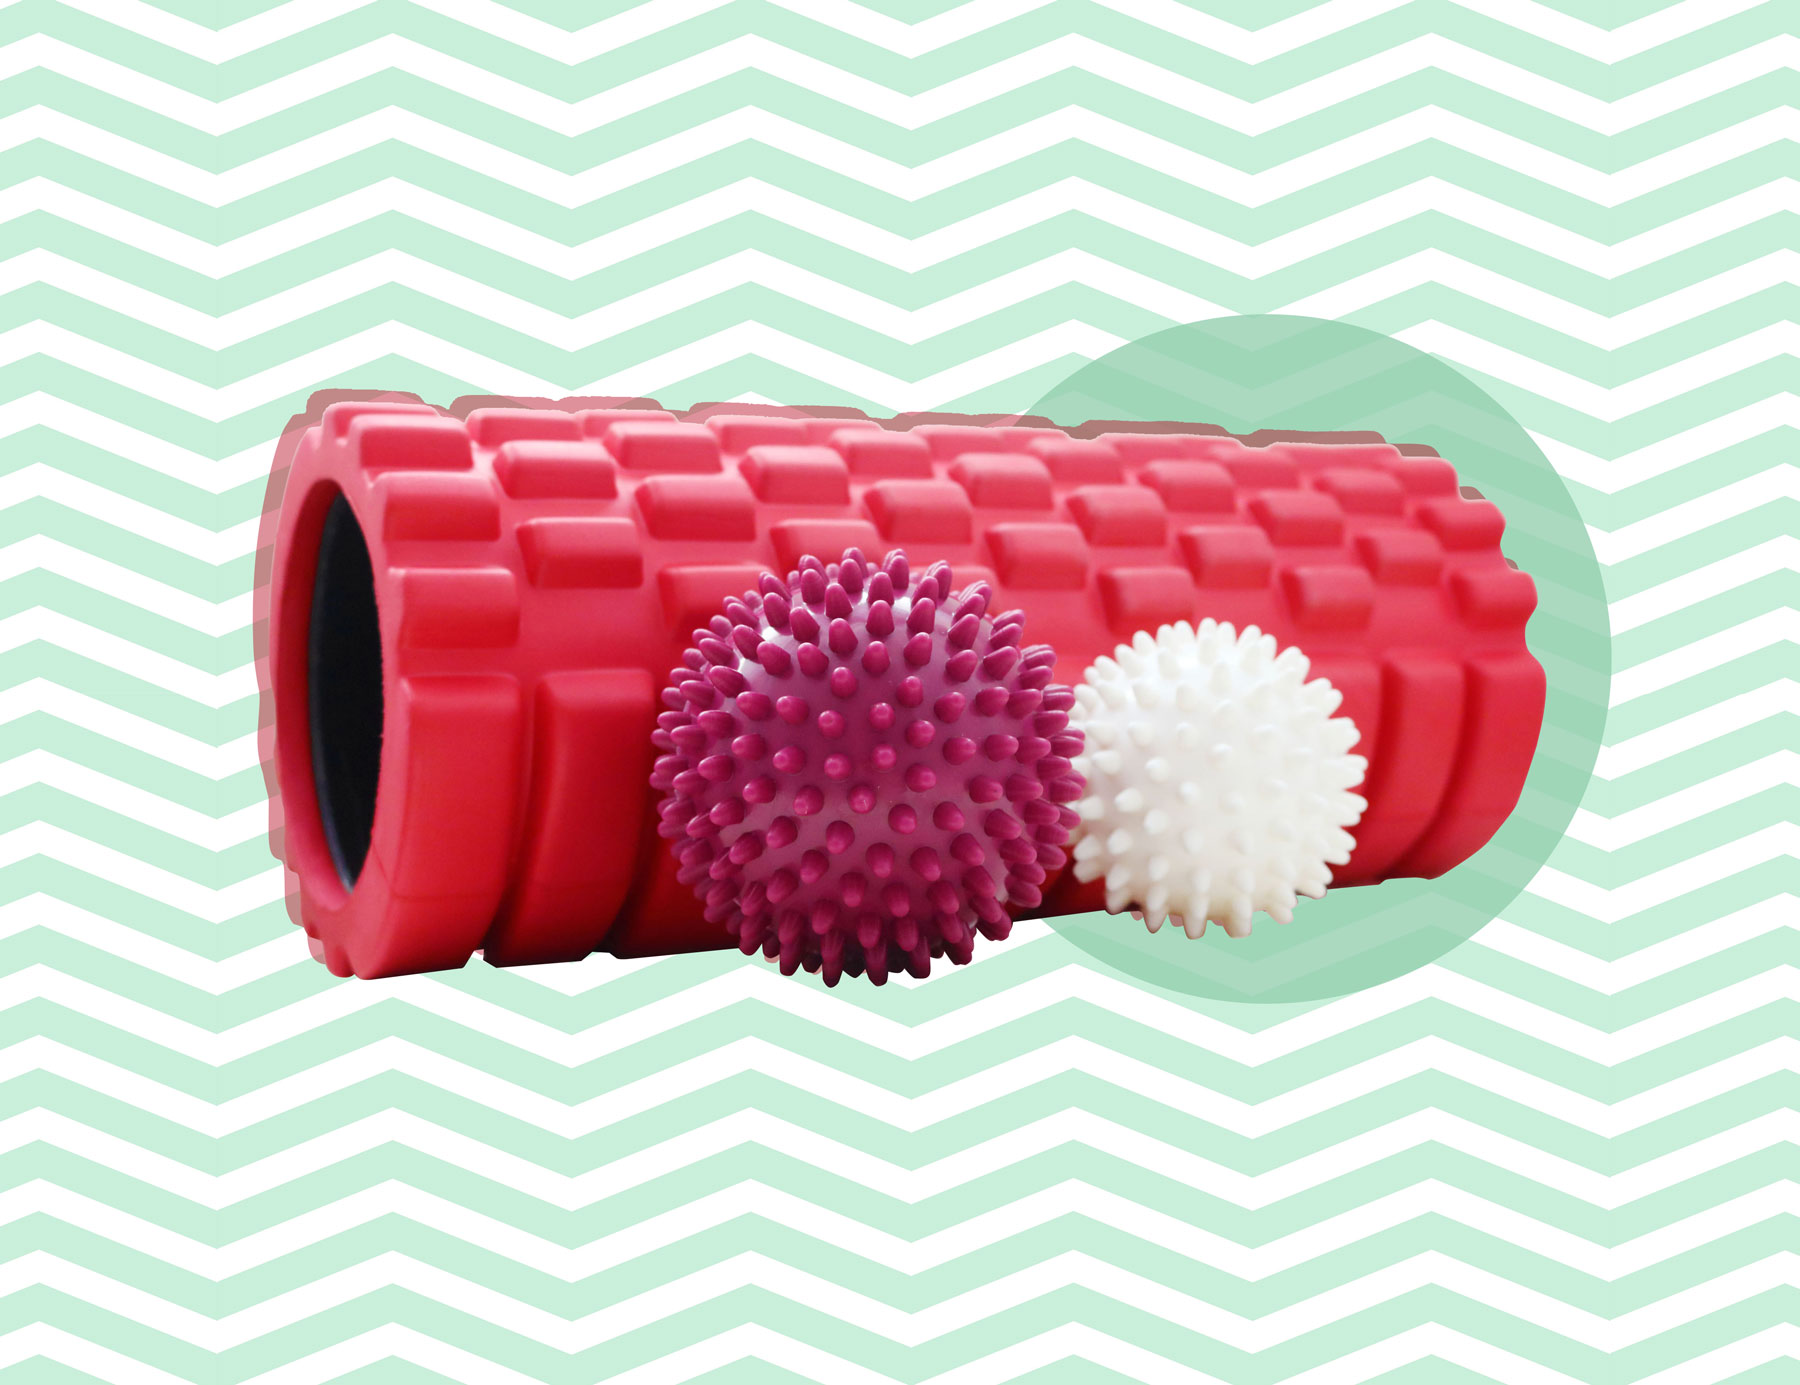 Relaxing exercises for a home massage - foam roller exercises and small ball rolling exercises